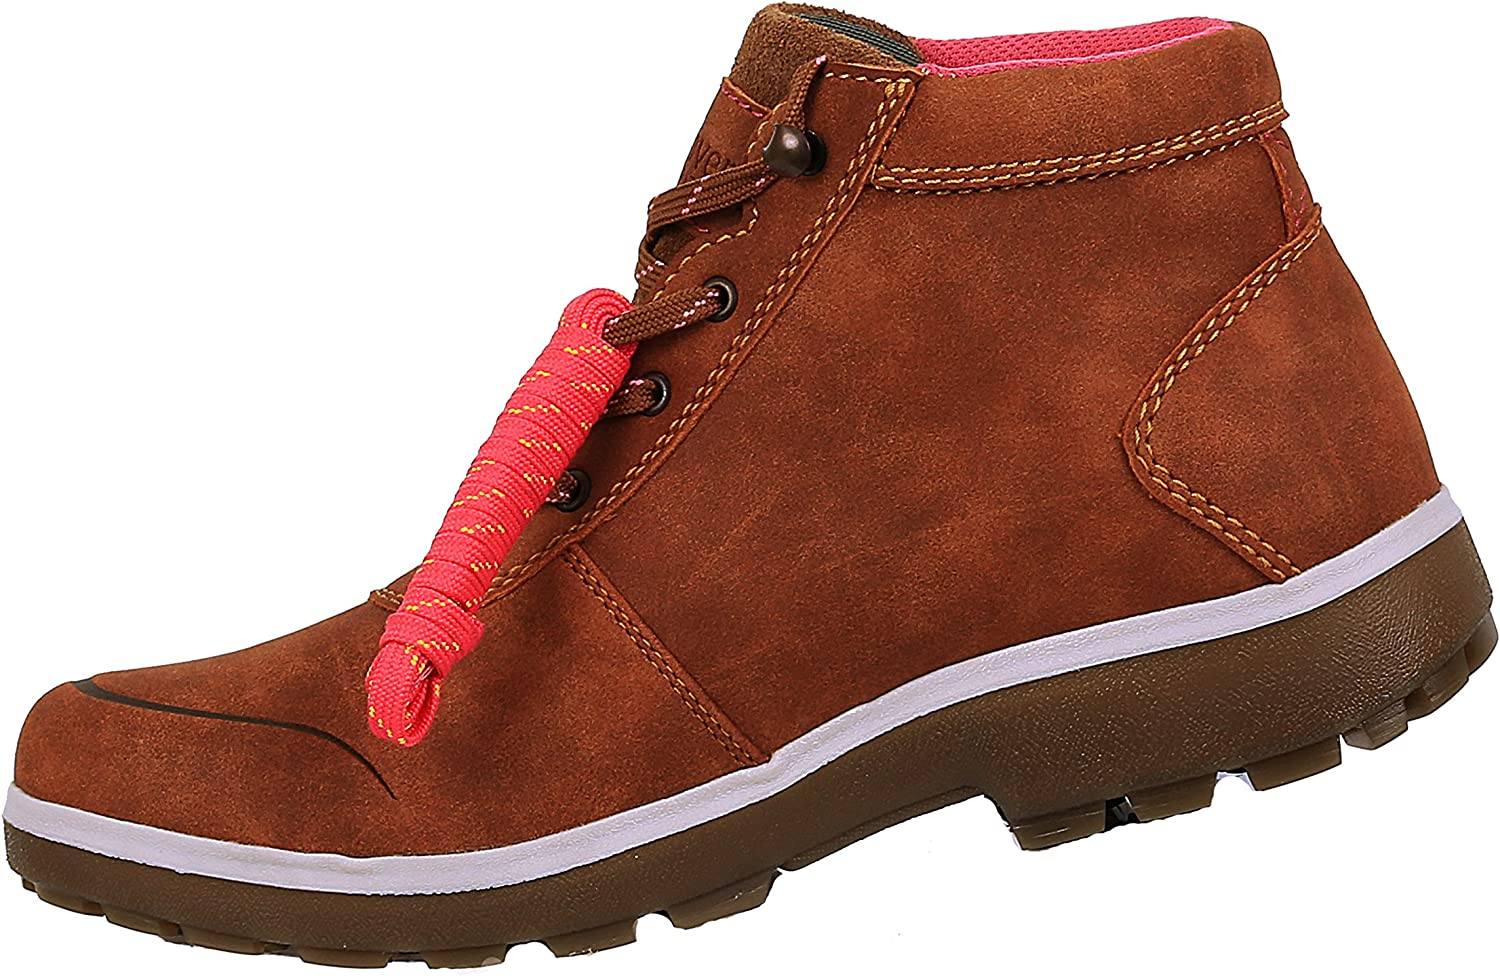 8.5 Discovery EXPEDITION Womens Adventure Mid Hiking Boot Cinnamon